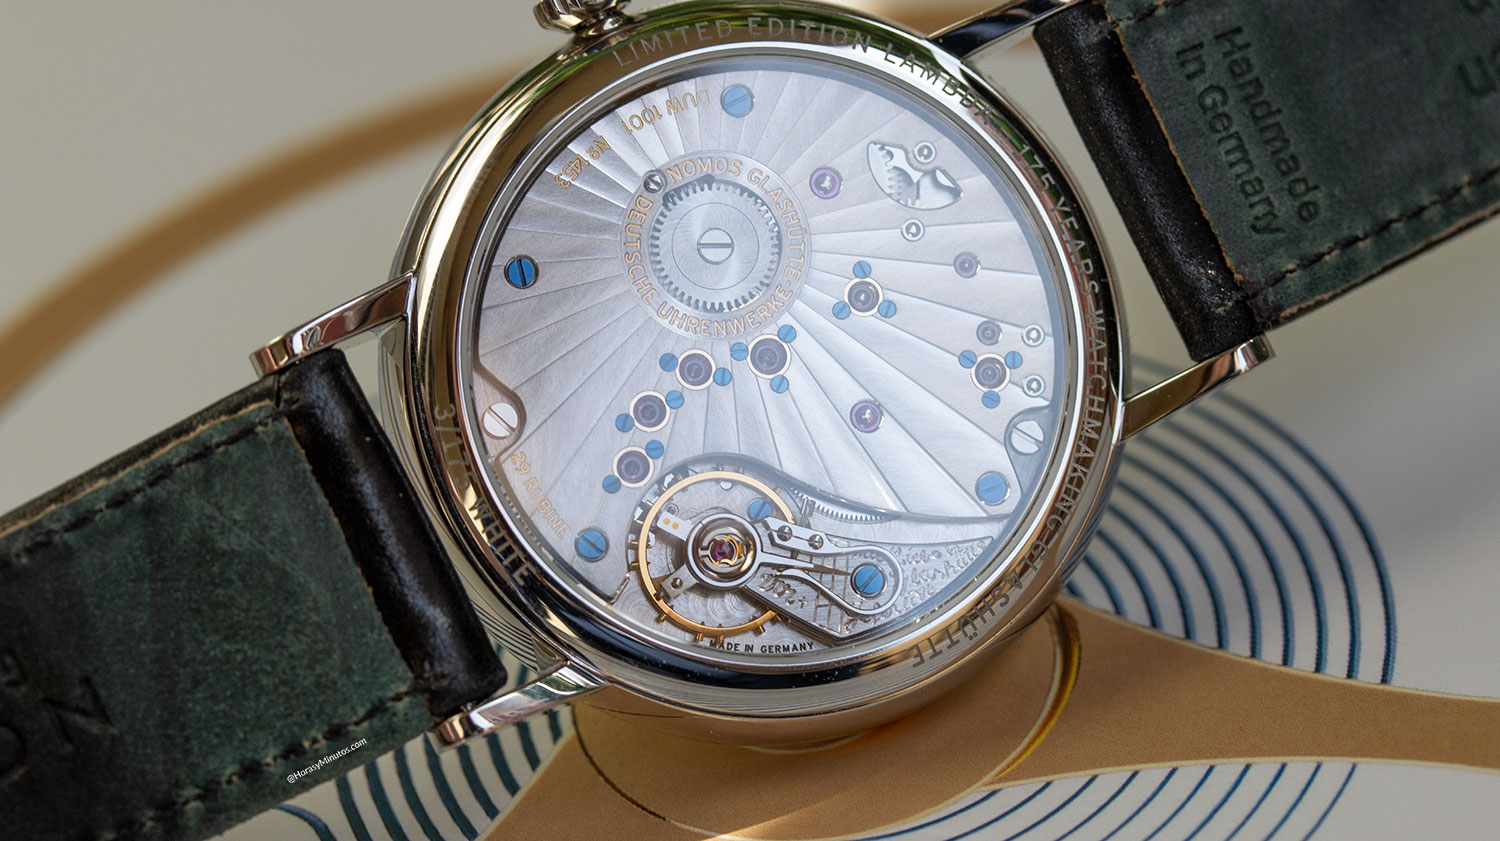 Calibre DUW 1001 del Nomos Lambda 175 Years Watchmaking